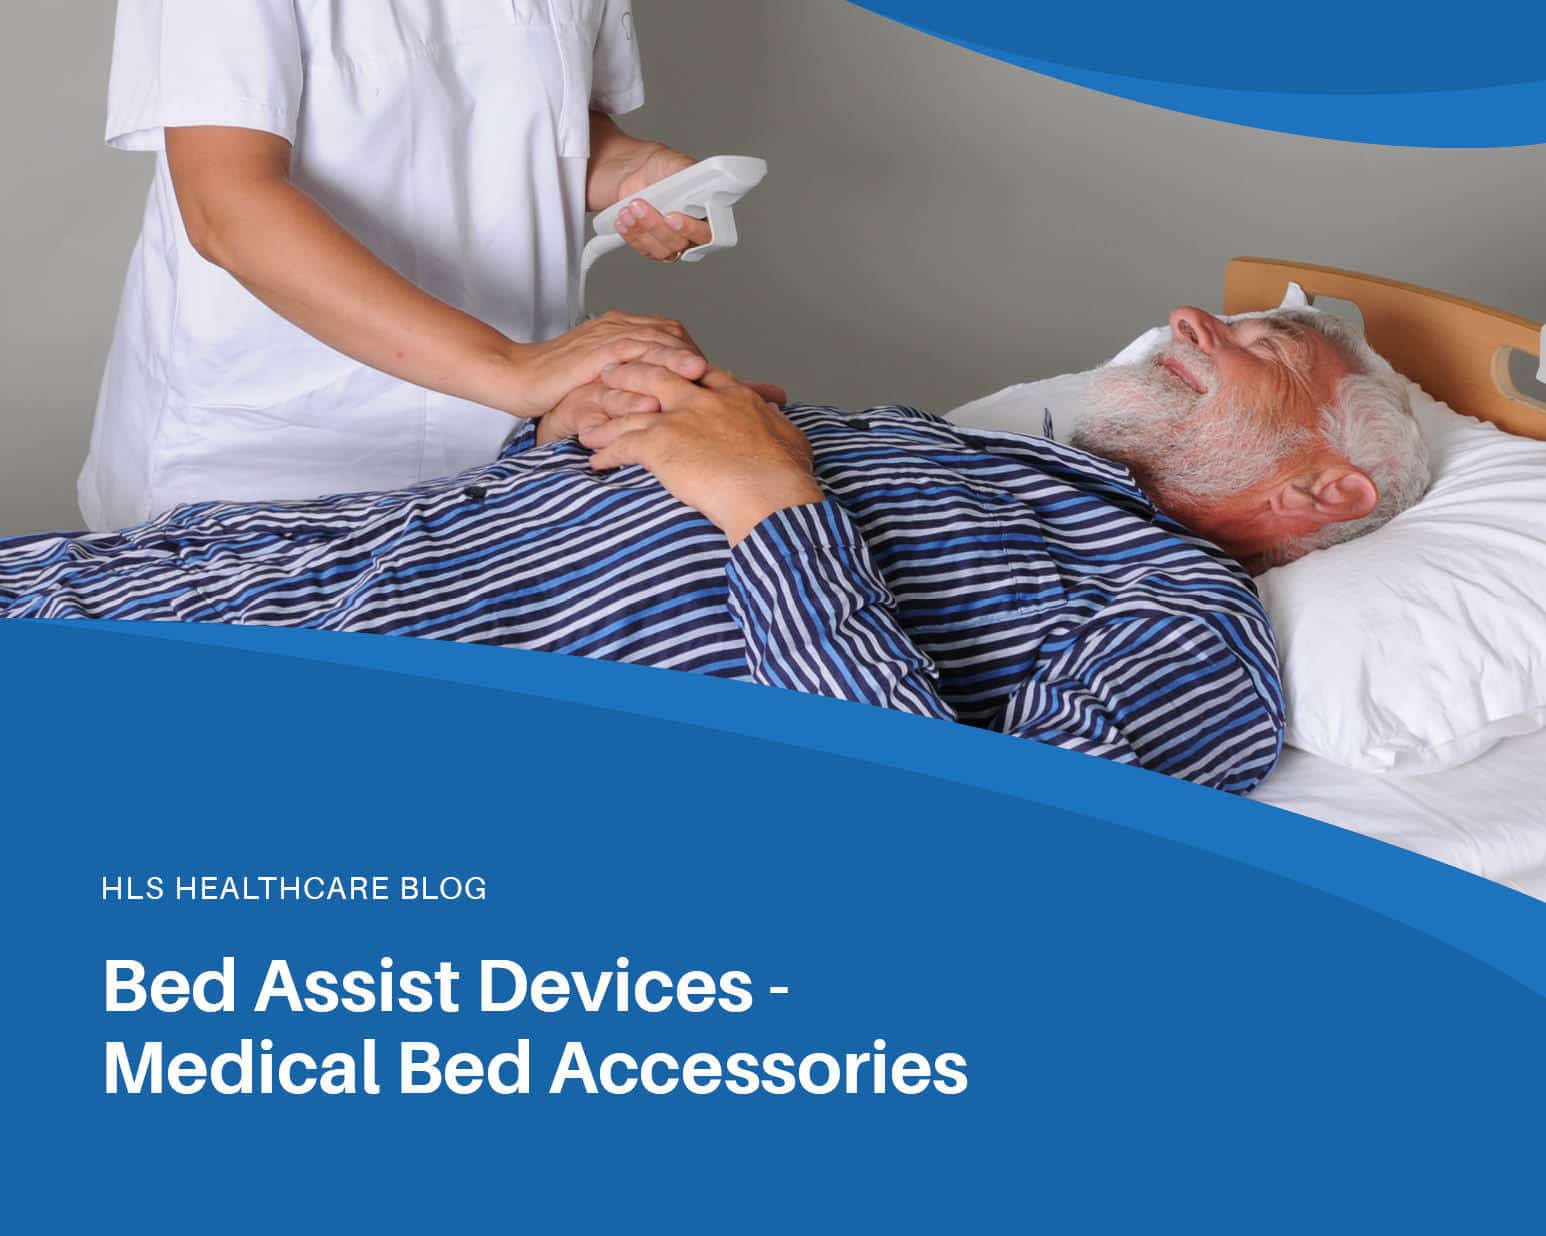 Bed Assist Devices - Medical Bed Accessories